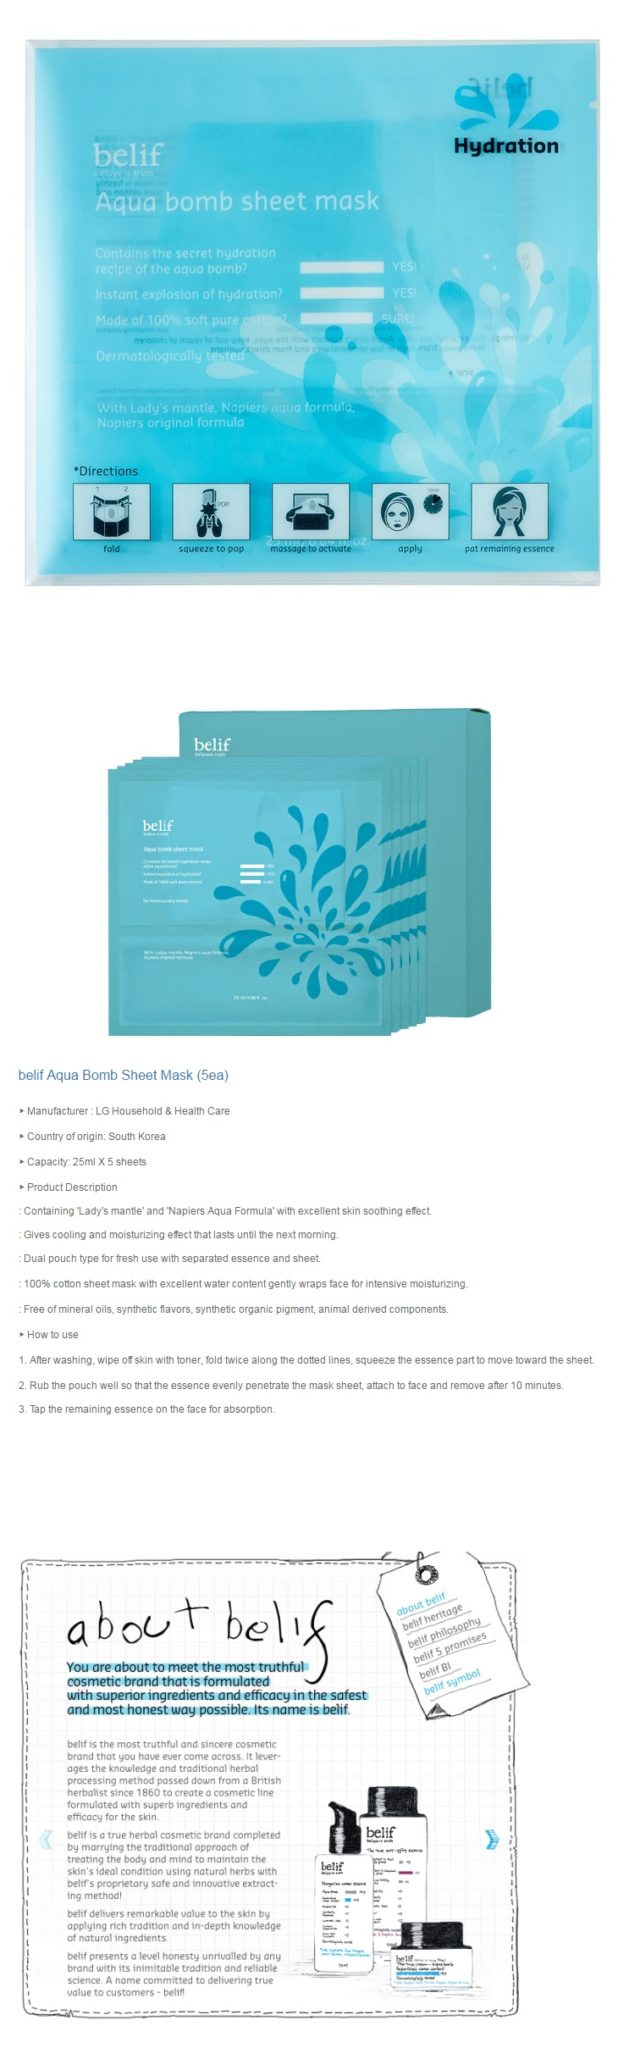 Belif Aqua Bomb Sheet Mask 5pcs box 135ml